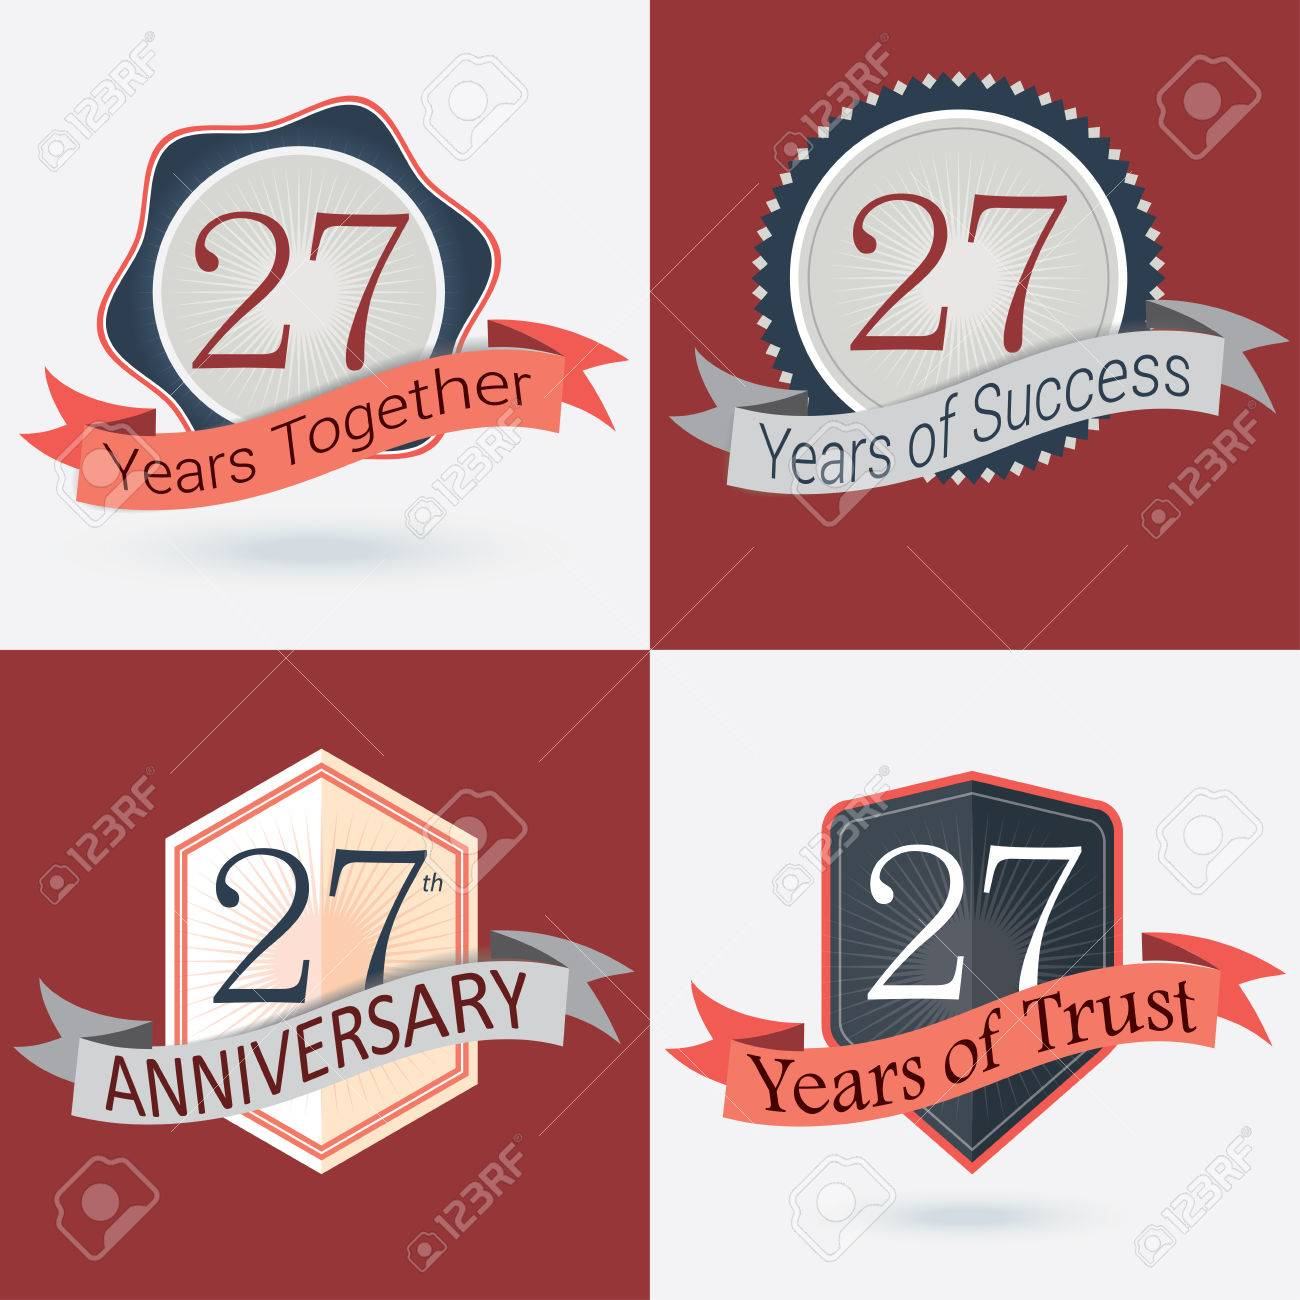 27th anniversary 27 years together 27 years of success royalty 27th anniversary 27 years together 27 years of success 27 years of trust set of biocorpaavc Images